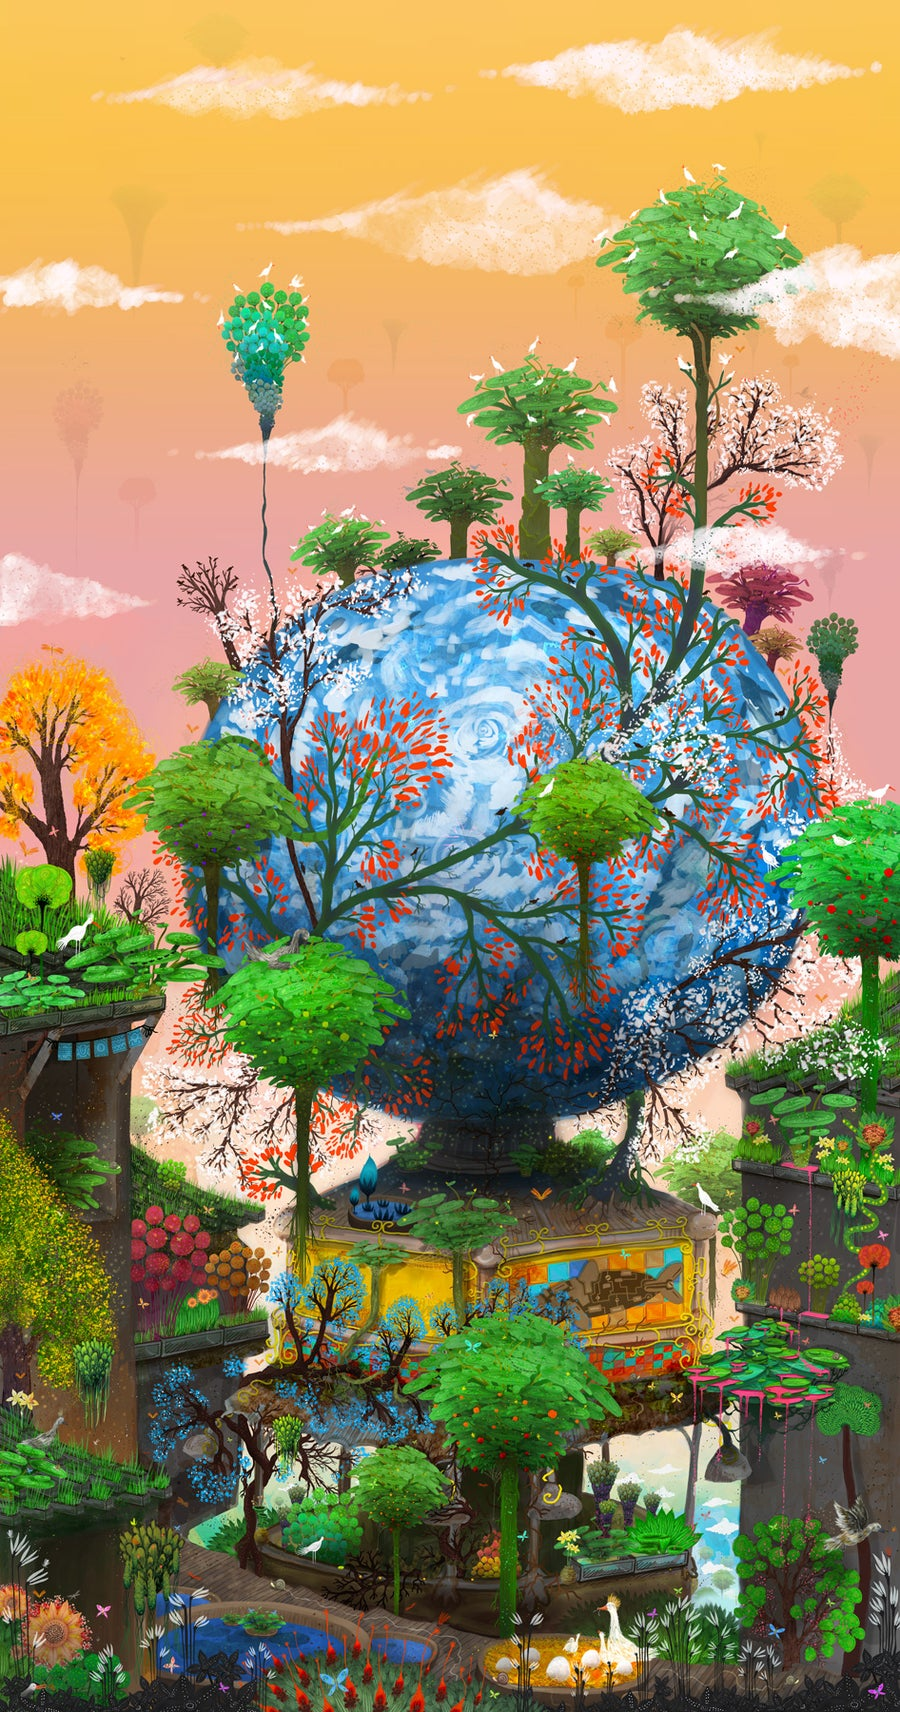 Image of The Sun Globe Aquarium